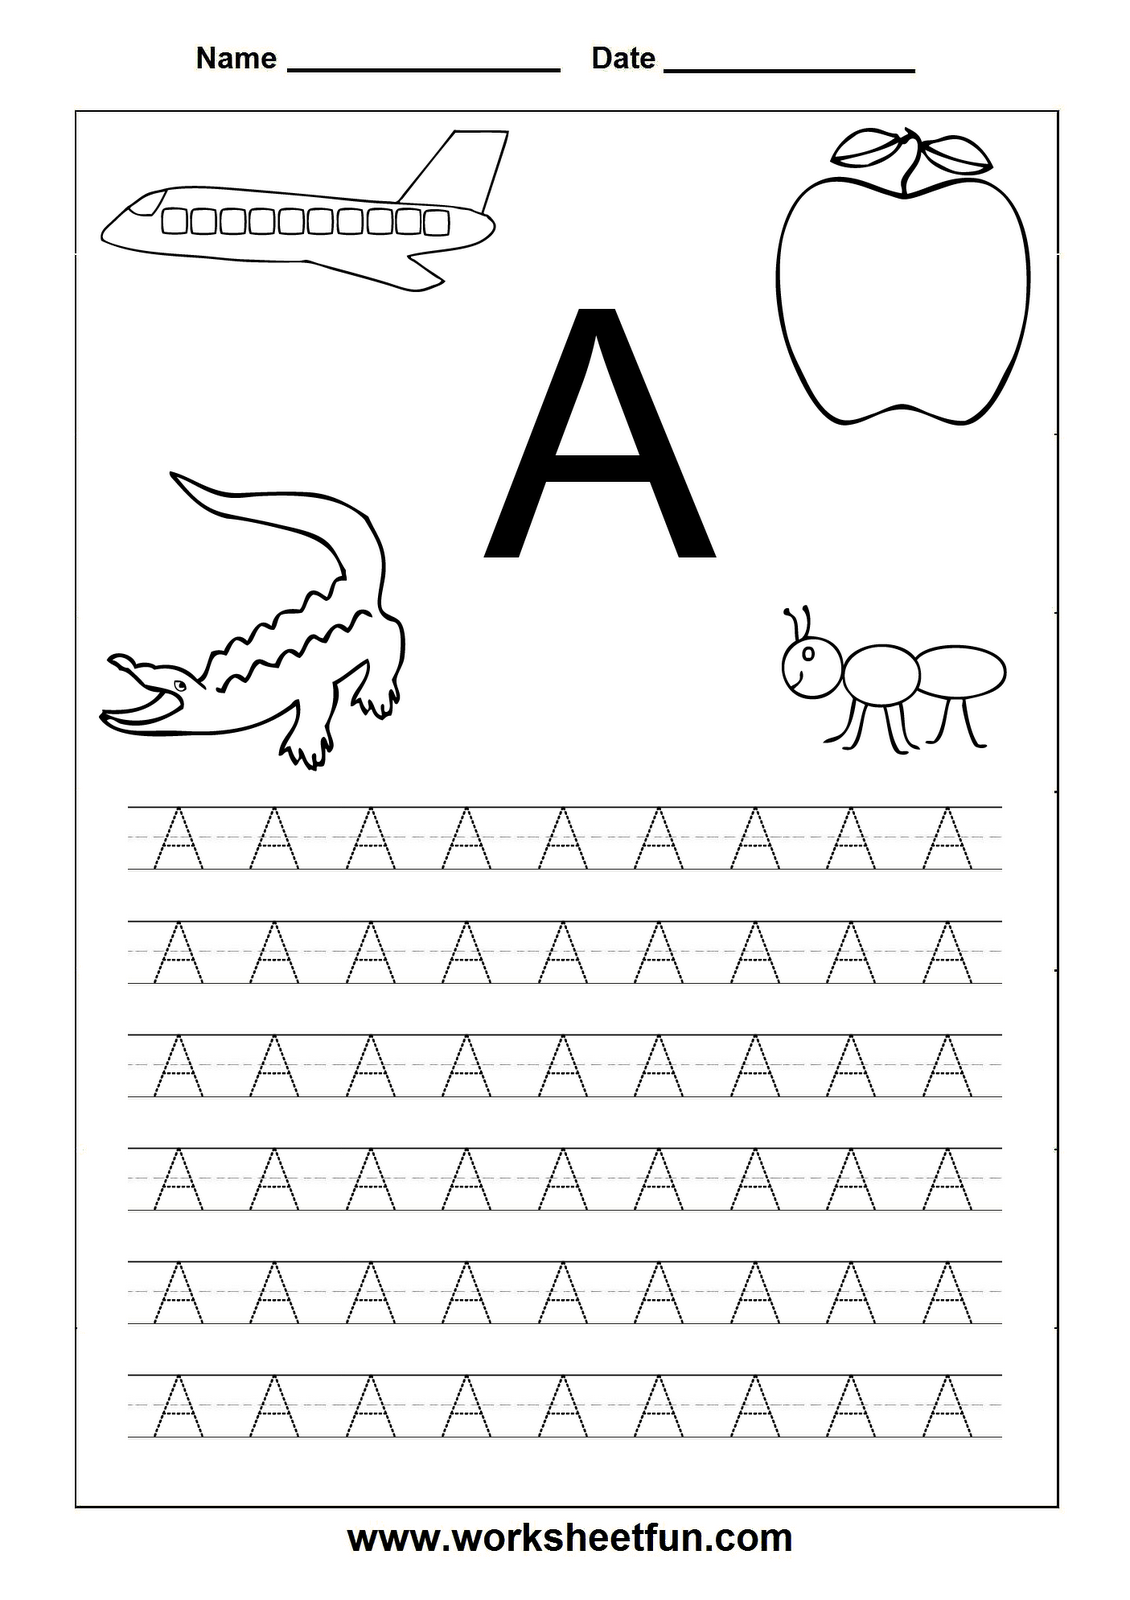 Worksheet Printable Letter Tracing 1000 images about letters on pinterest handwriting worksheets letter tracing and alphabet